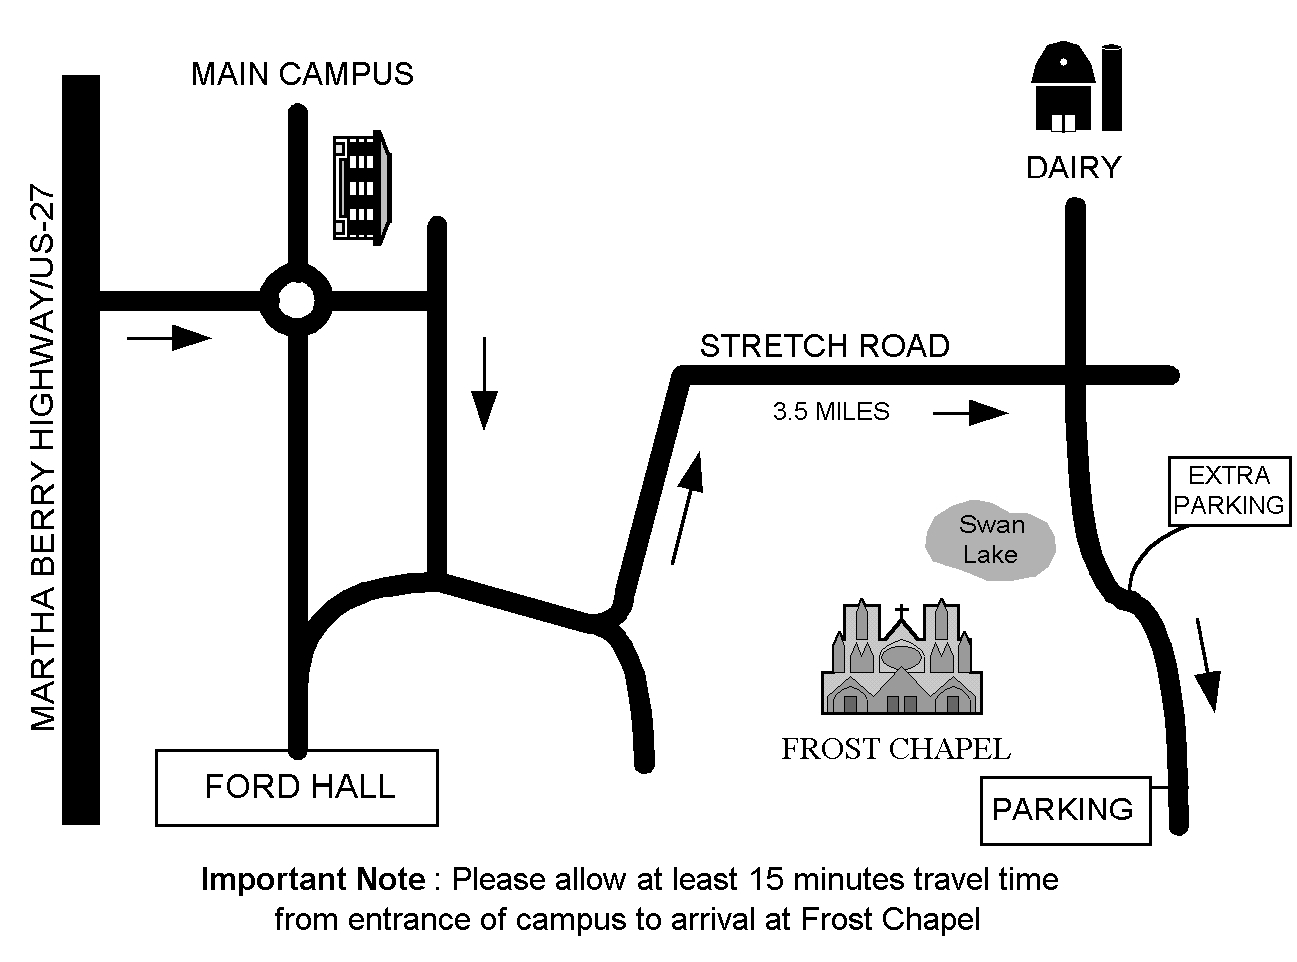 A general outline of the location of Frost Chapel.